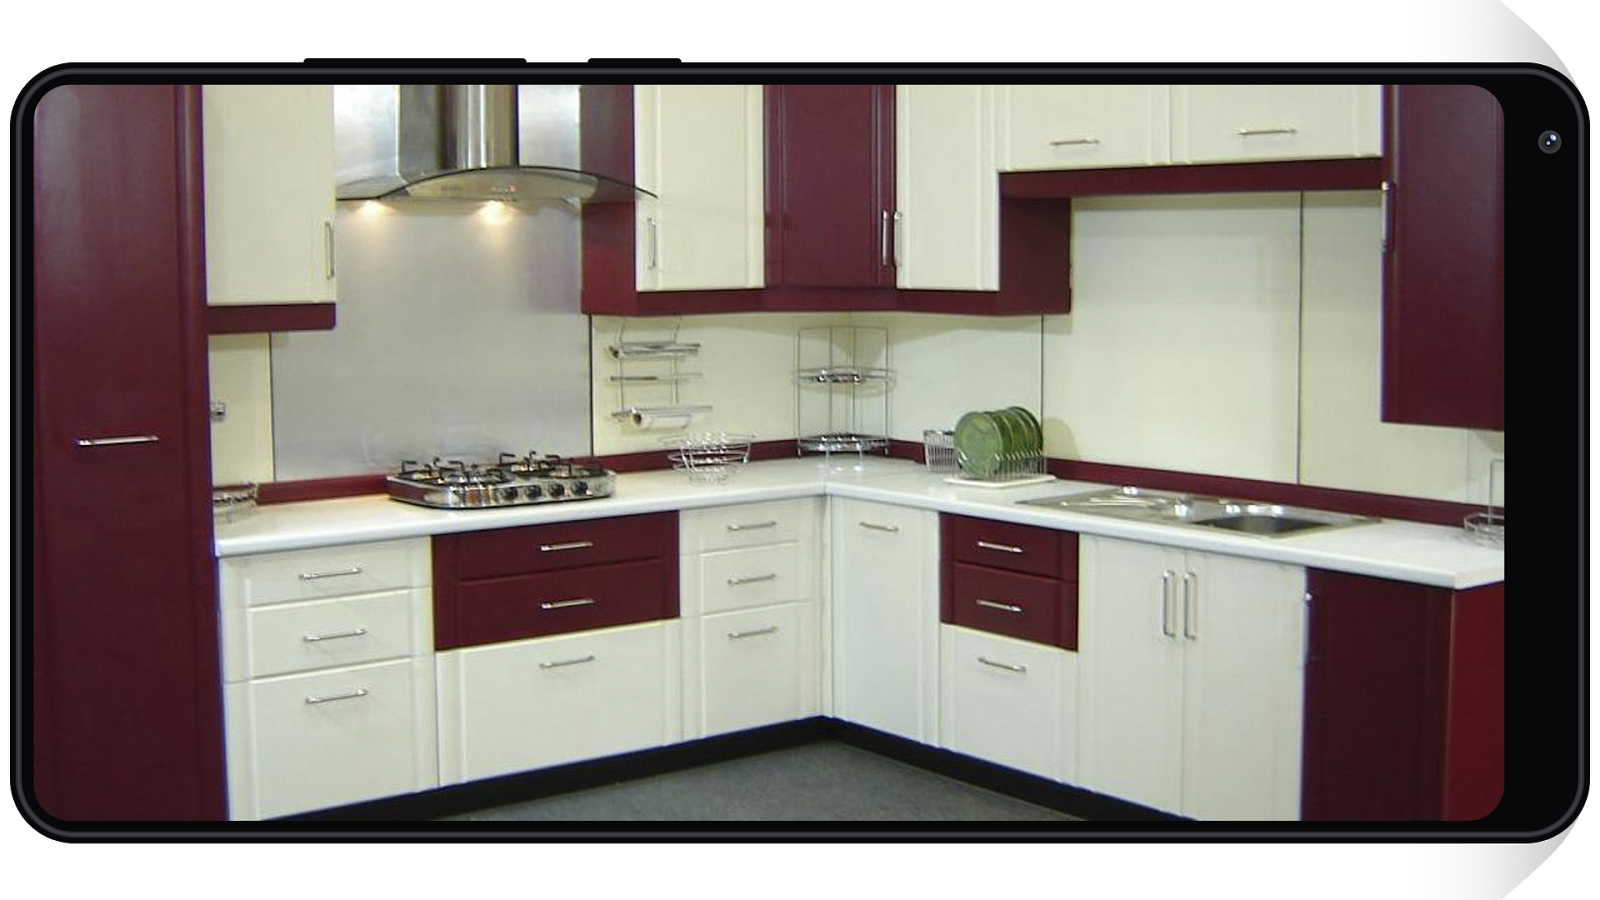 Latest kitchens designs 2018 android apps on google play for Latest kitchen designs